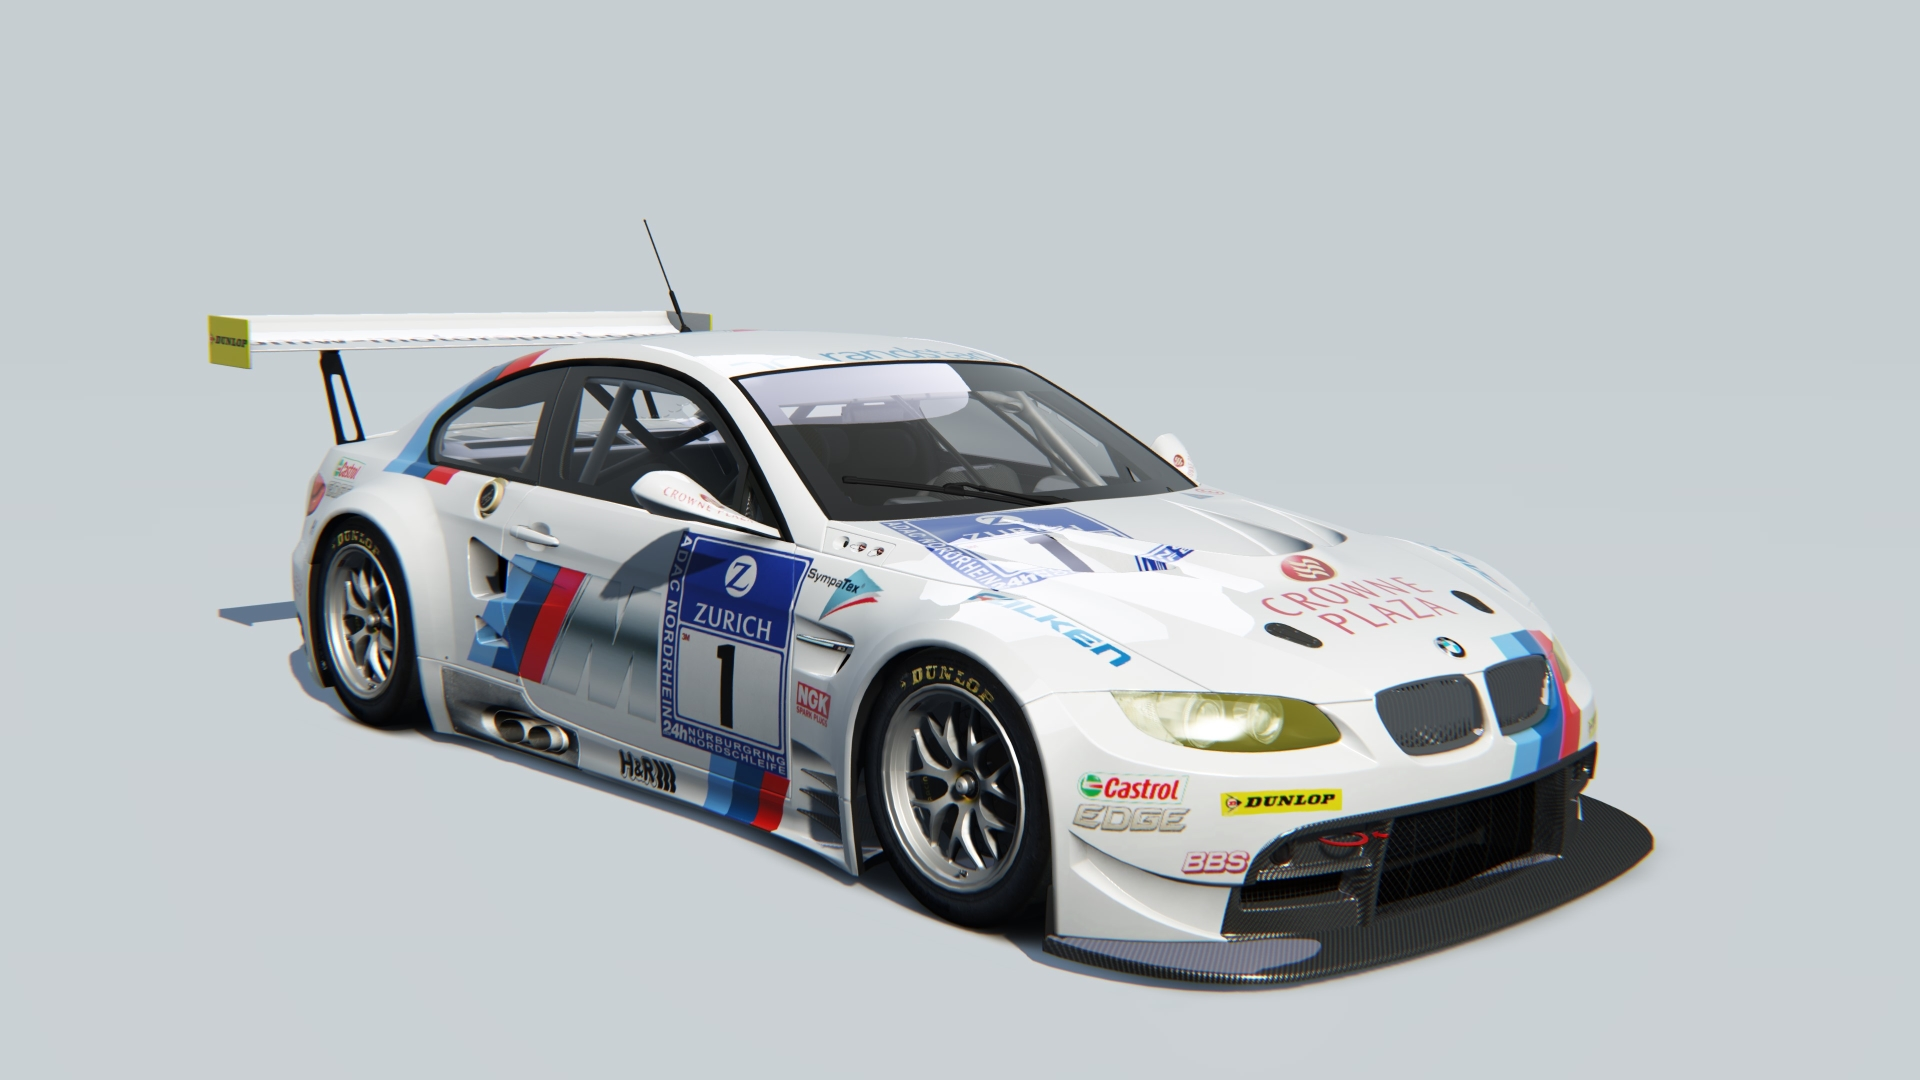 Bmw Z4 M Coupe >> Z4 E89 35is - Assetto Corsa